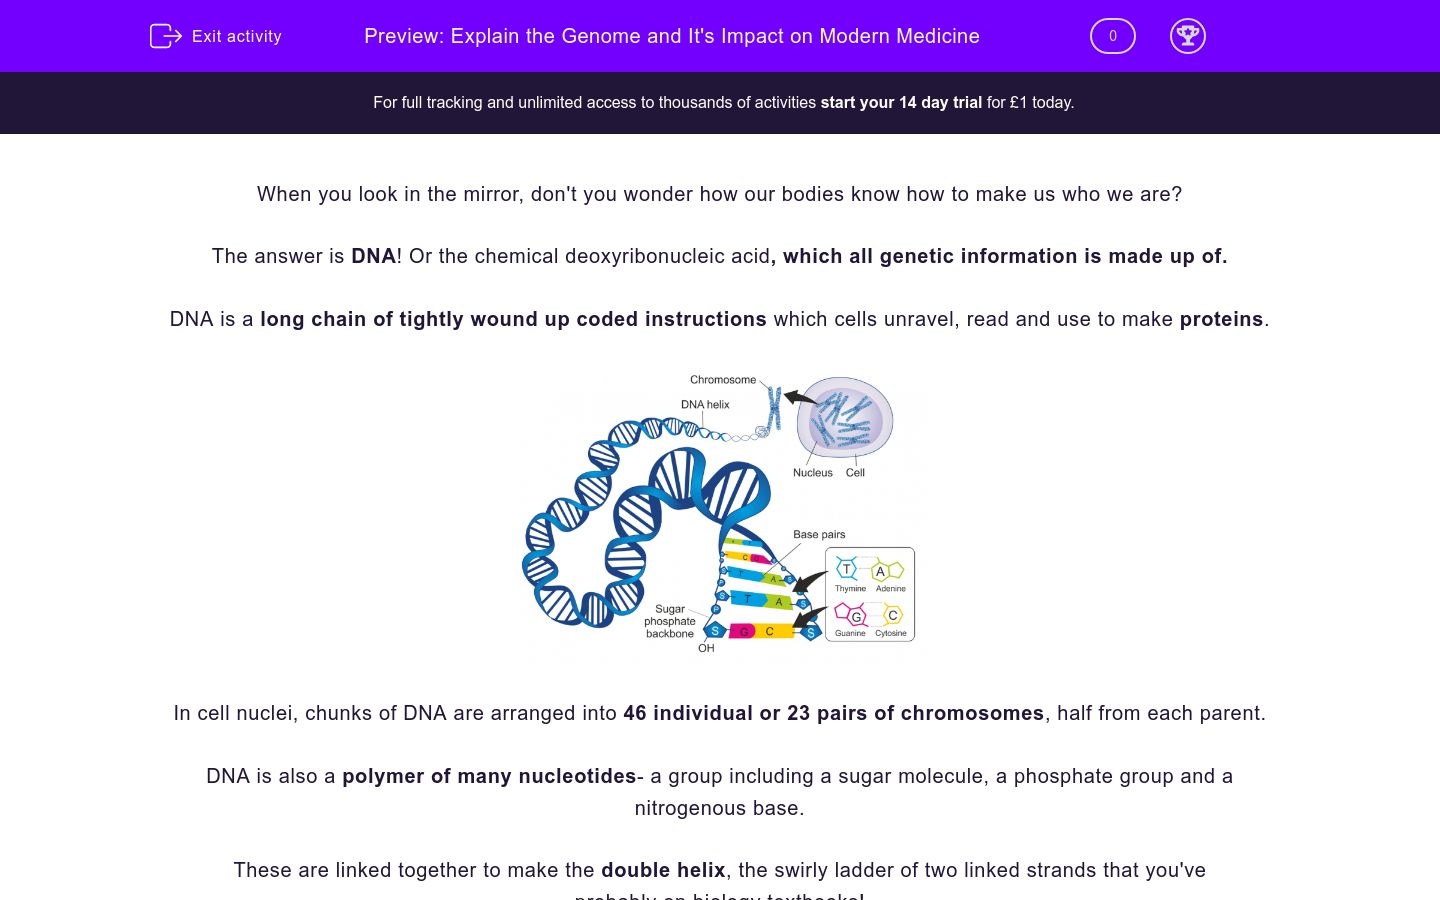 'Explain the Genome and It's Impact on Modern Medicine' worksheet